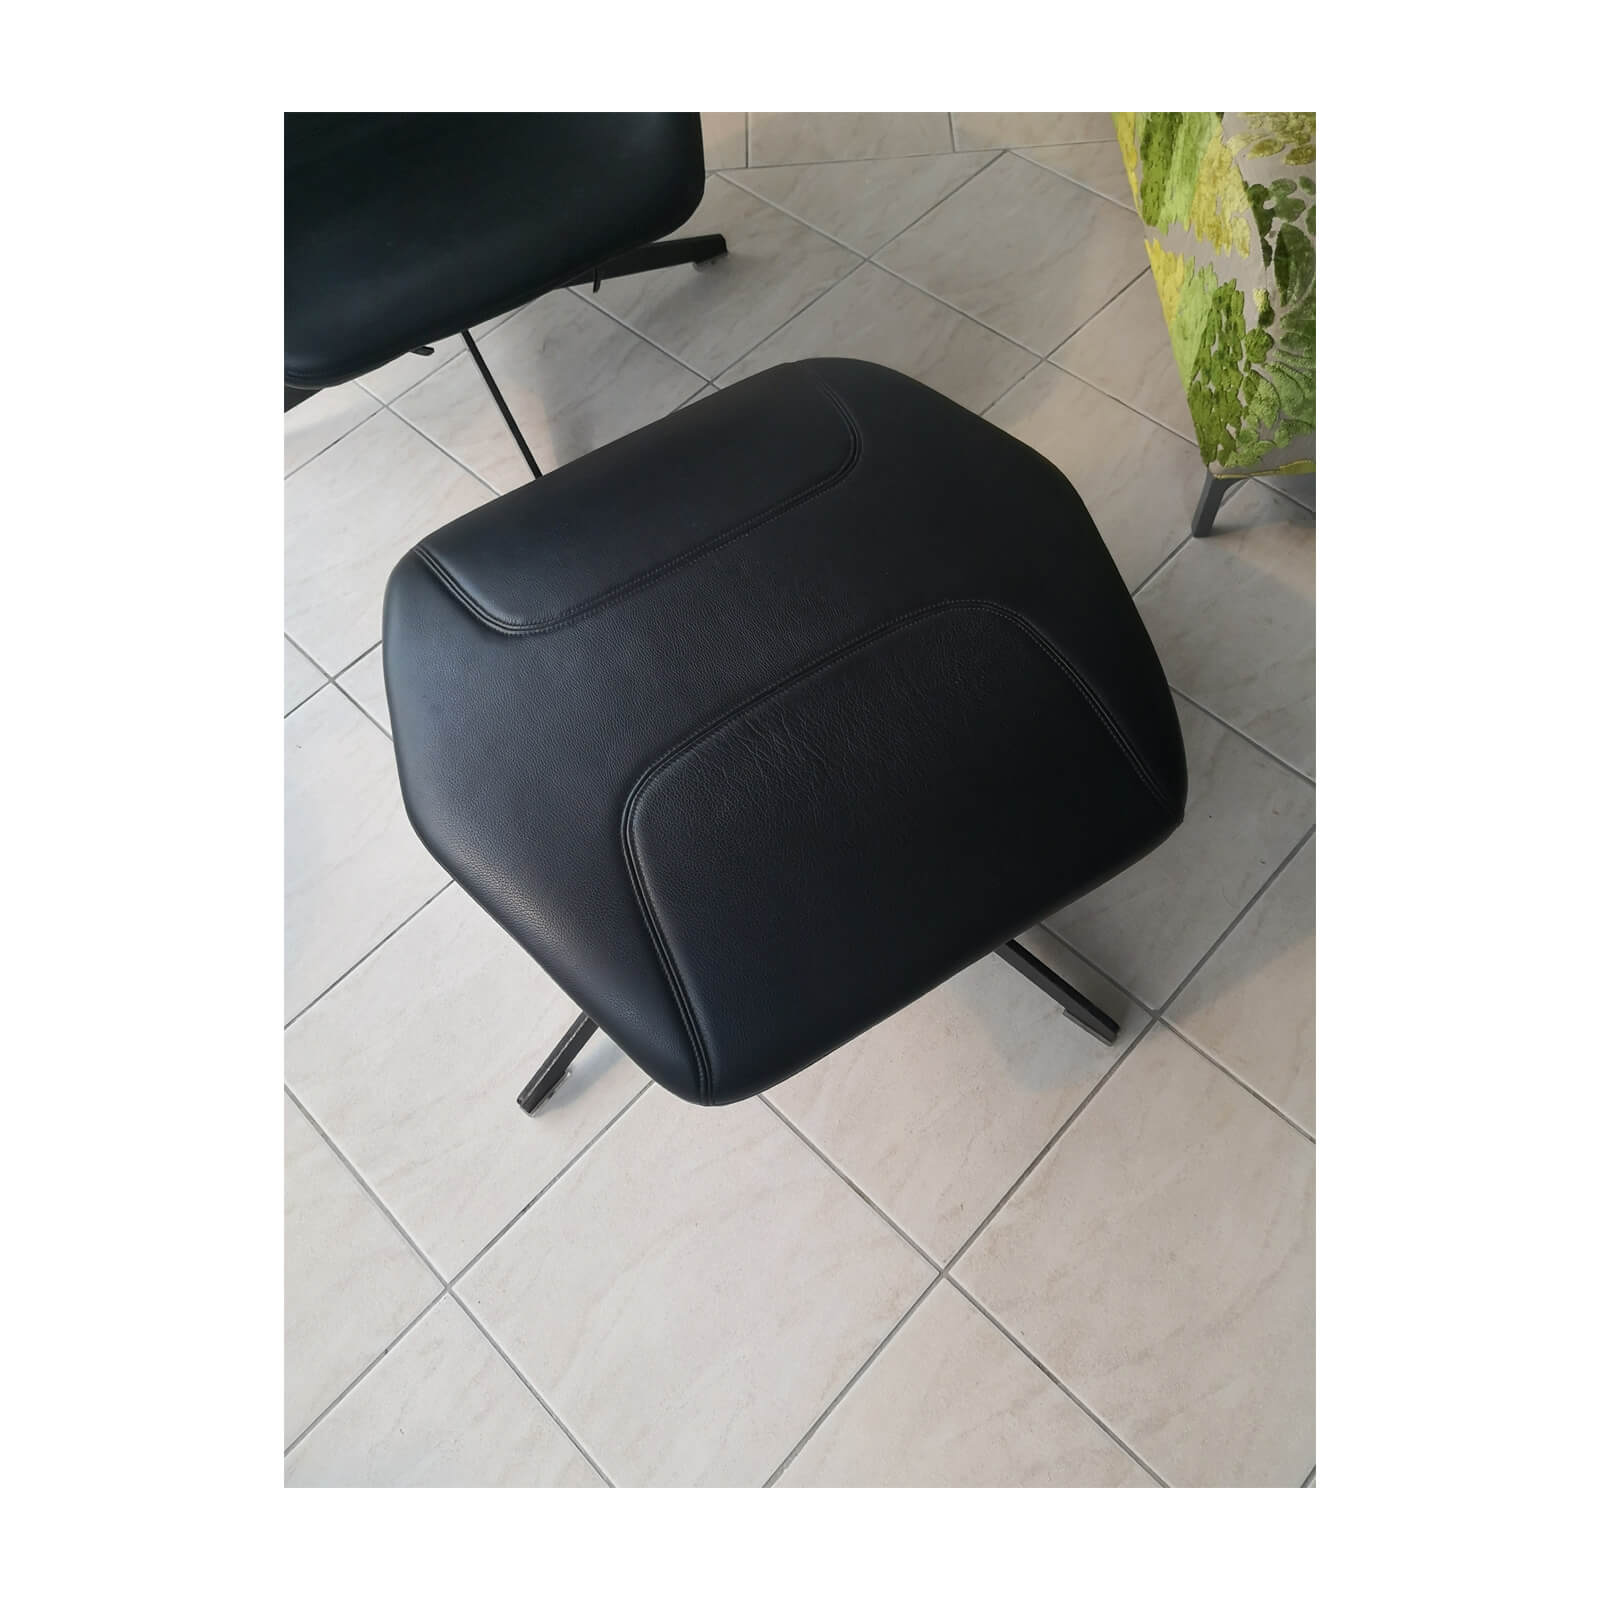 Two Design Lovers Moroso Take a Line for a Walk black swivel chair with footstool 6